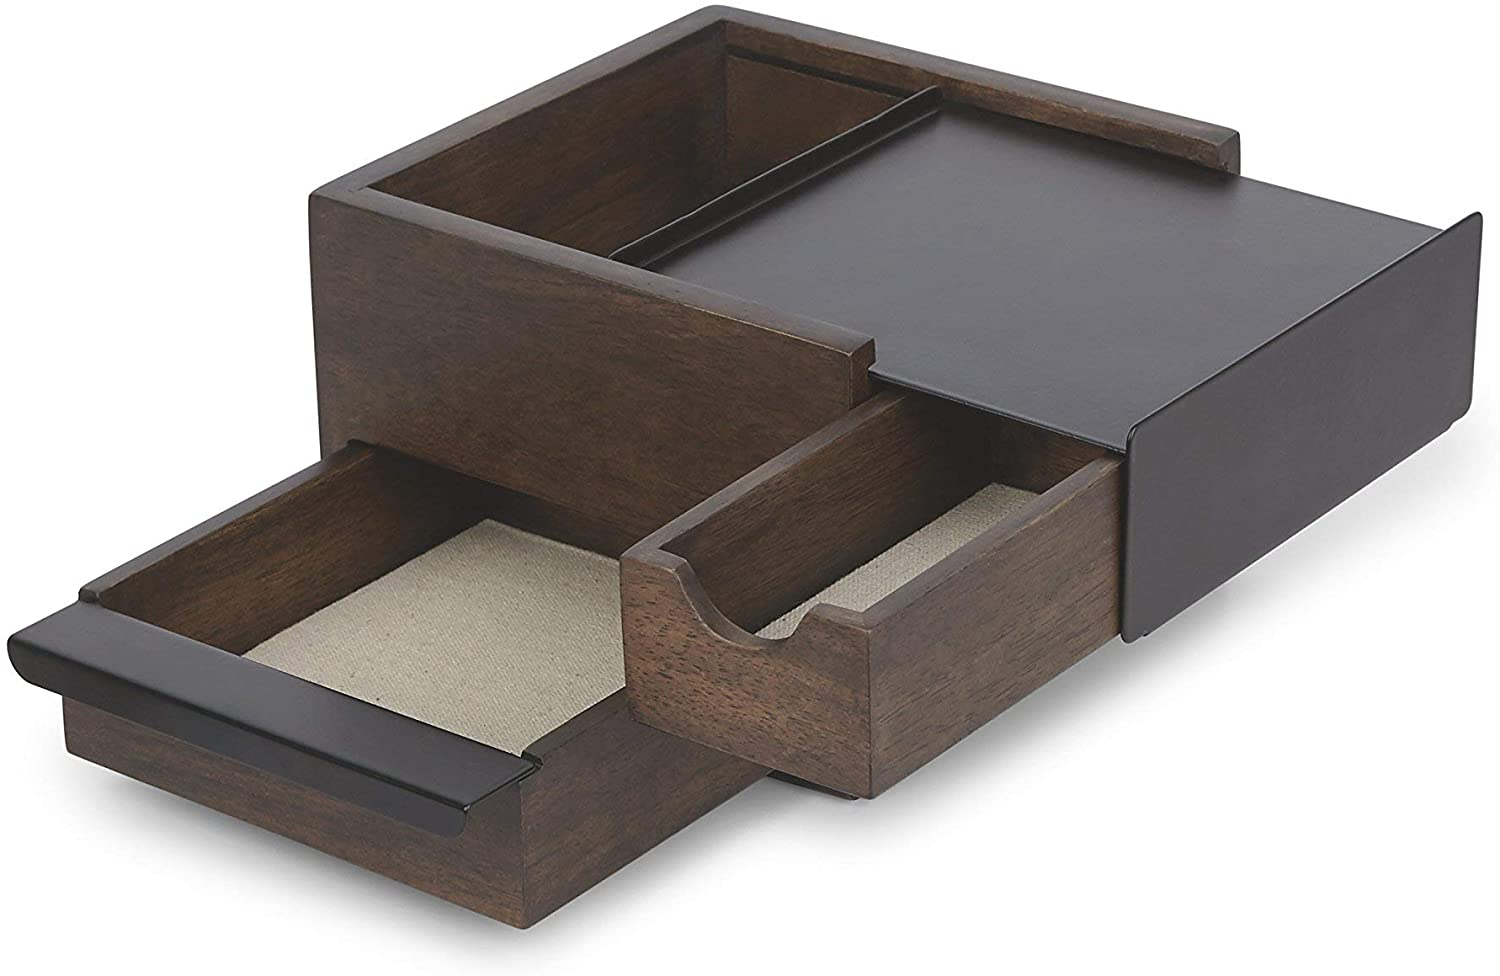 gifts-for-minimalists-box